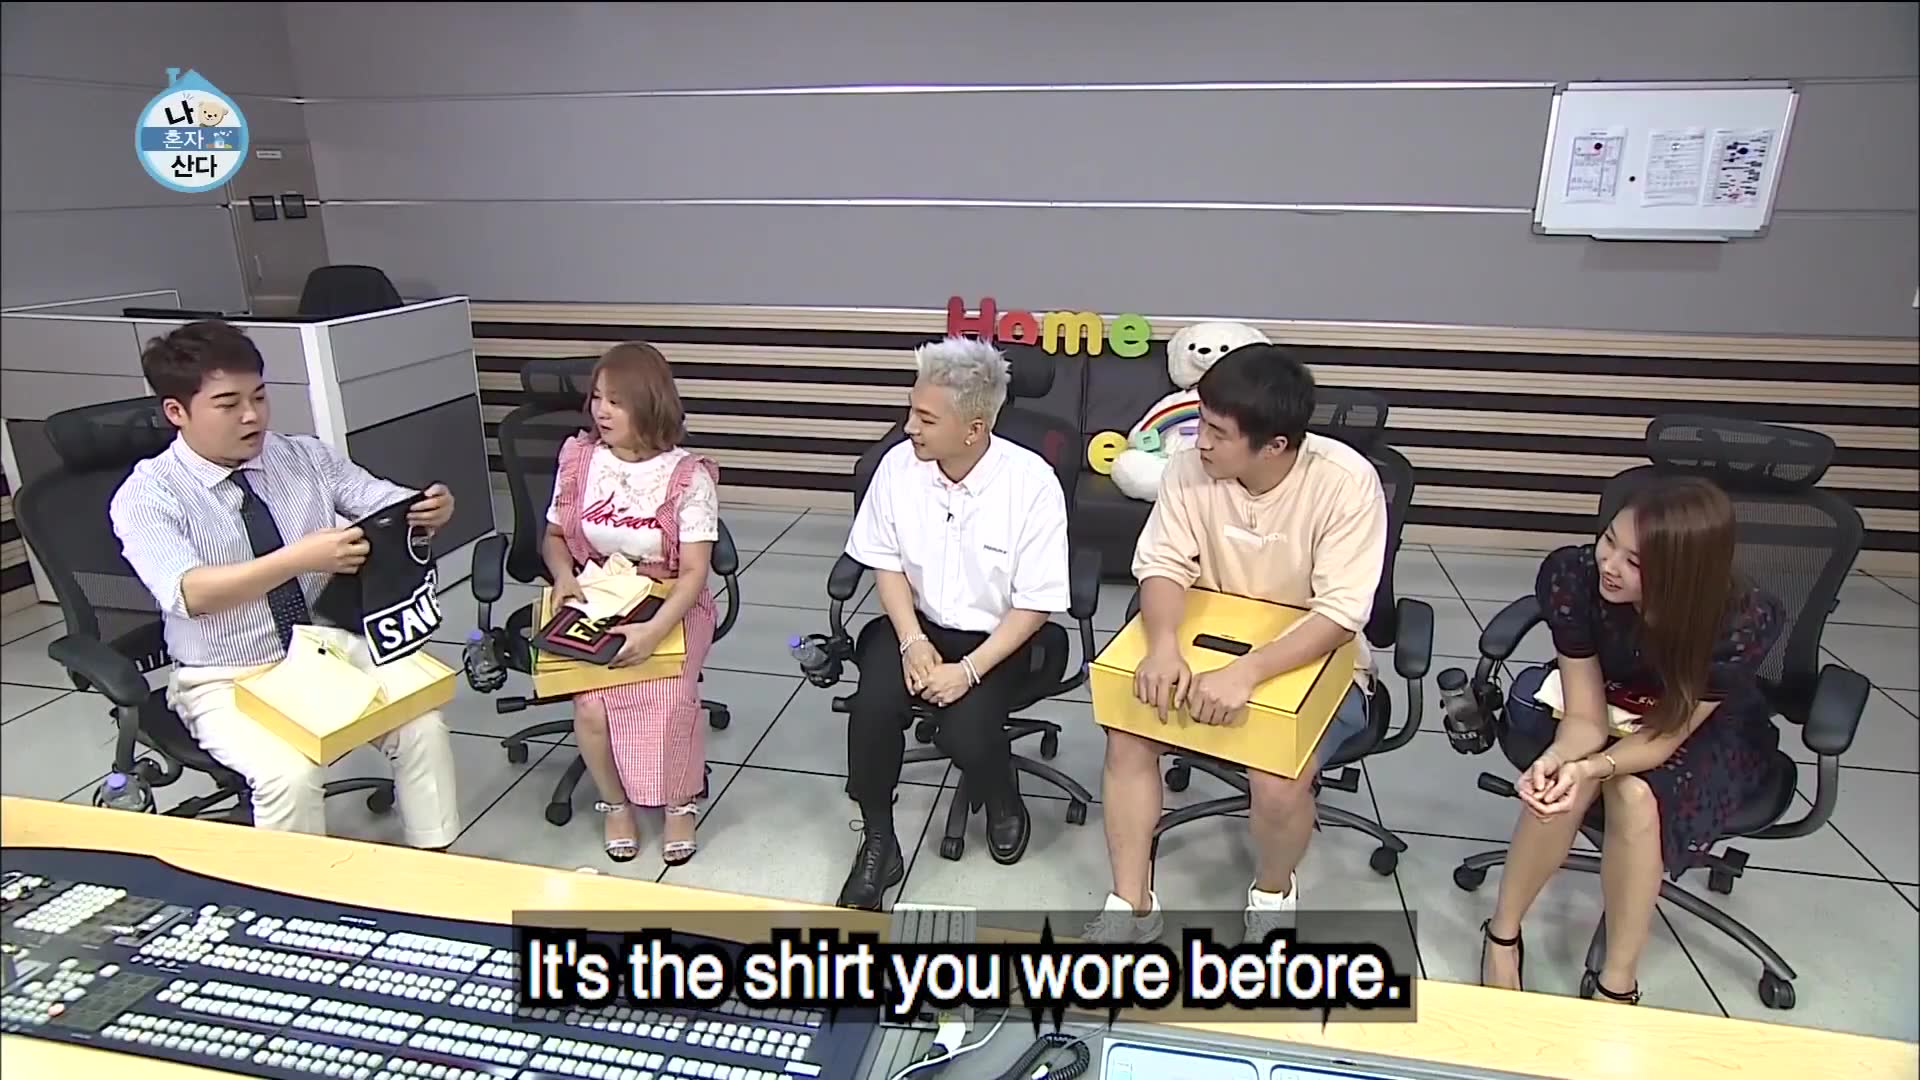 Episode 219 Clip 2 TaeYang's gifts for the hosts: Home Alone